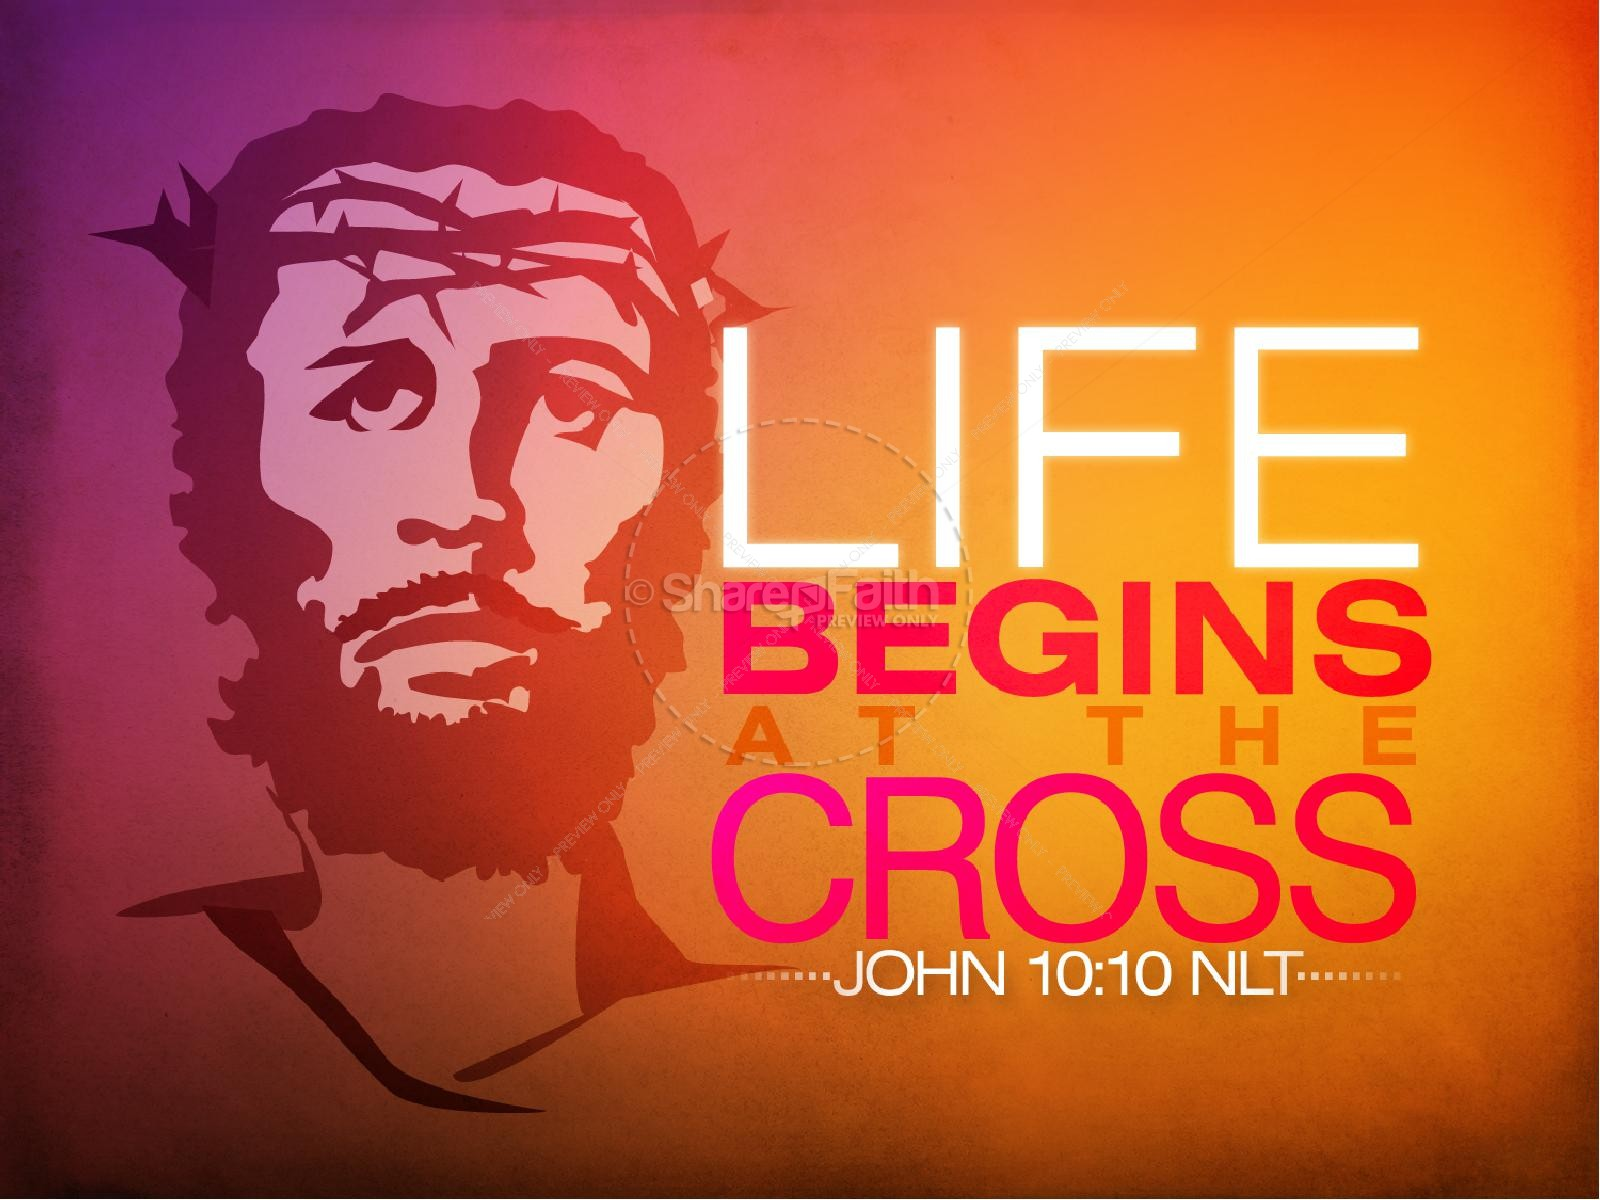 Jesus on the cross powerpoint template easter sunday jesus on the cross powerpoint template toneelgroepblik Gallery